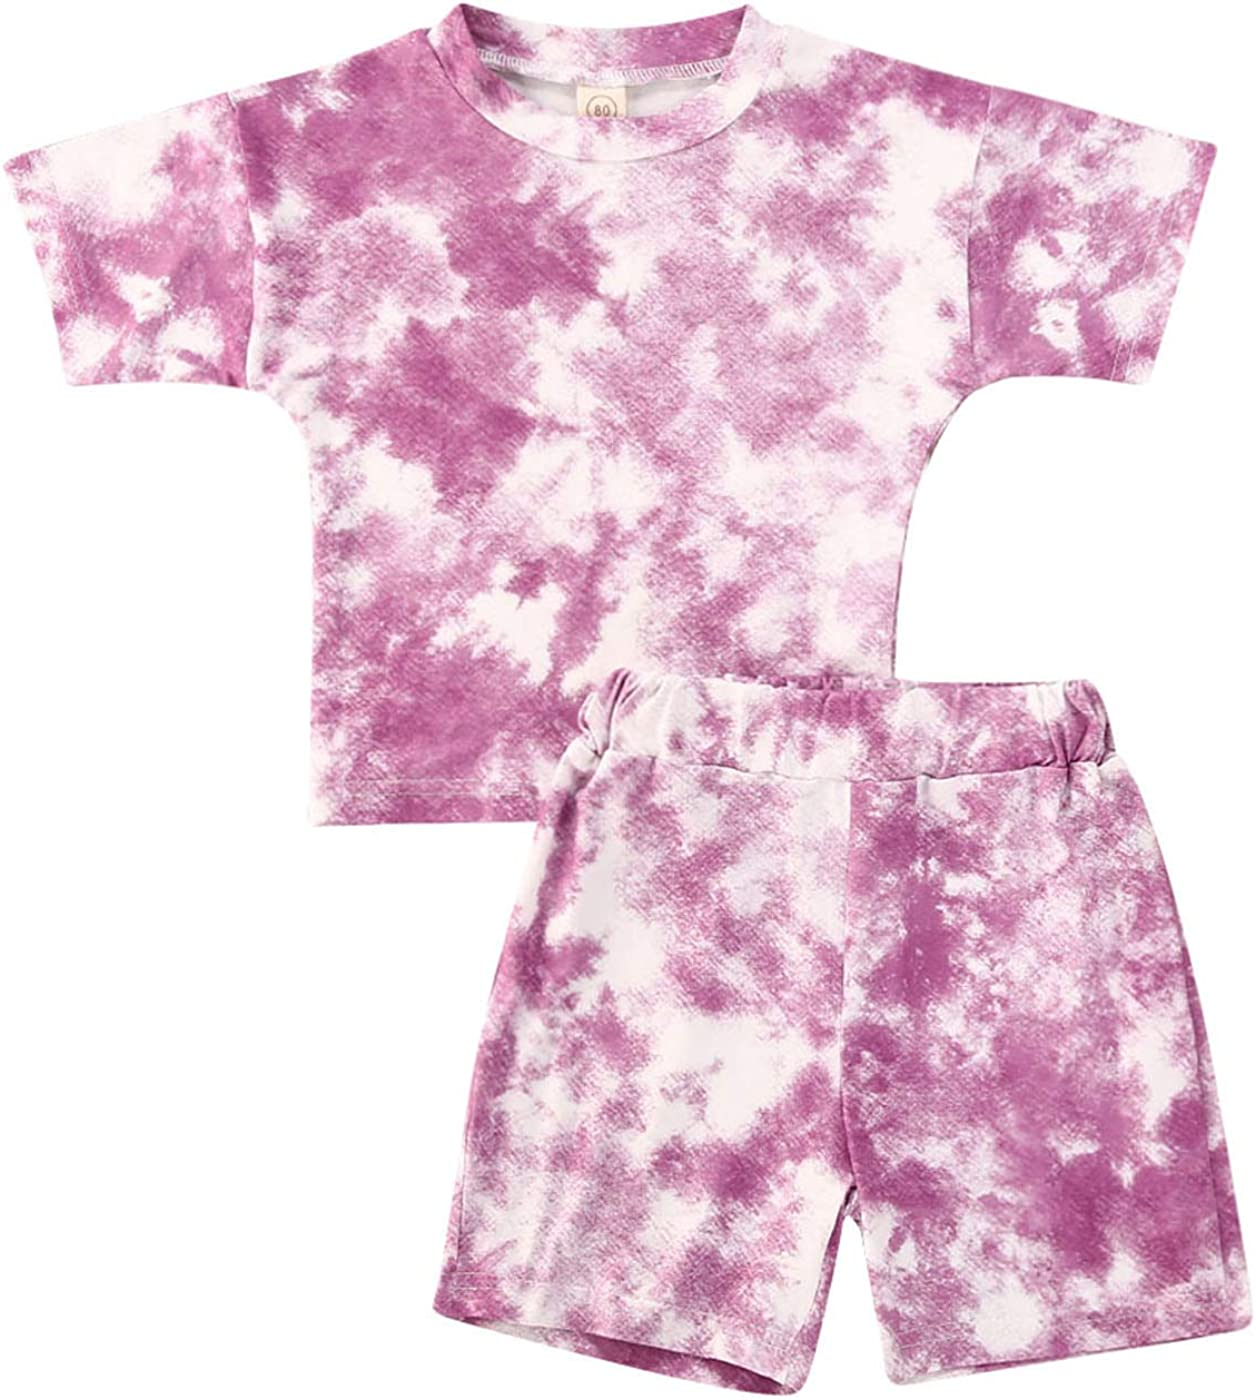 2PC Toddler Baby Girl Tie-Dye Shorts Set, Short Sleeve T-Shirt Top and Short Pants Tie Dye Print Casual Clothes